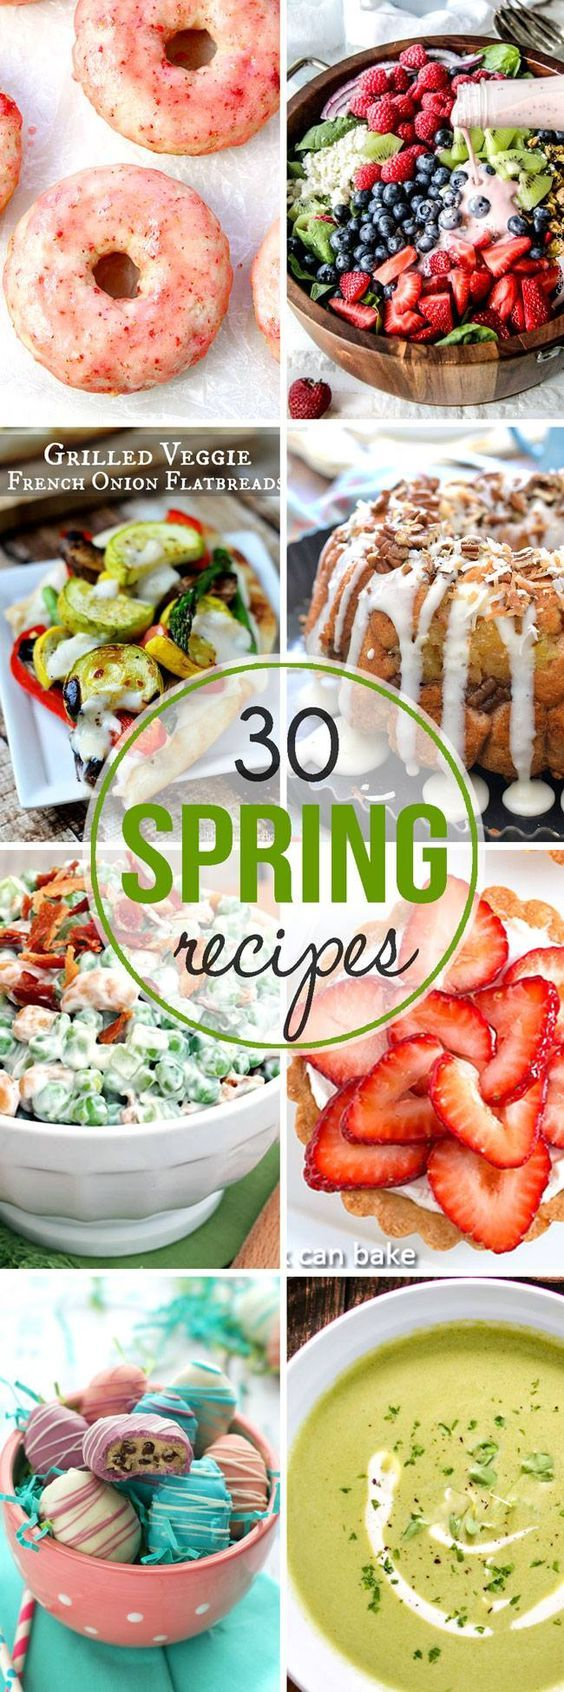 30 amazing spring recipes to celebrate the season! @lizzydo